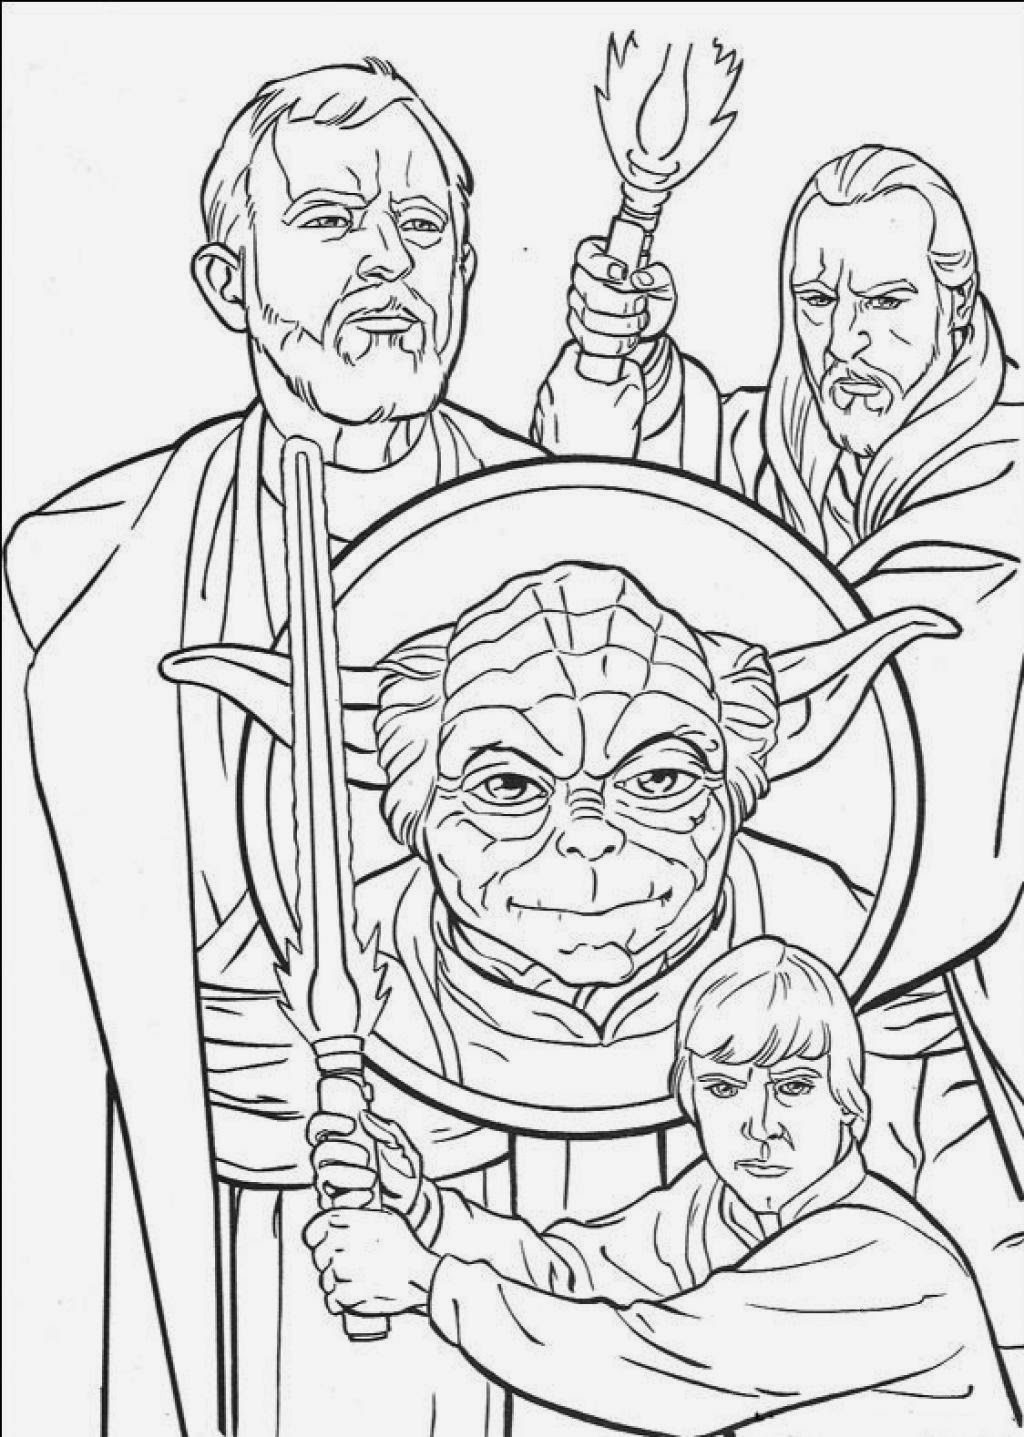 star wars the clone wars pictures to print star wars the clone wars coloring pages printable wars print pictures star clone the to wars